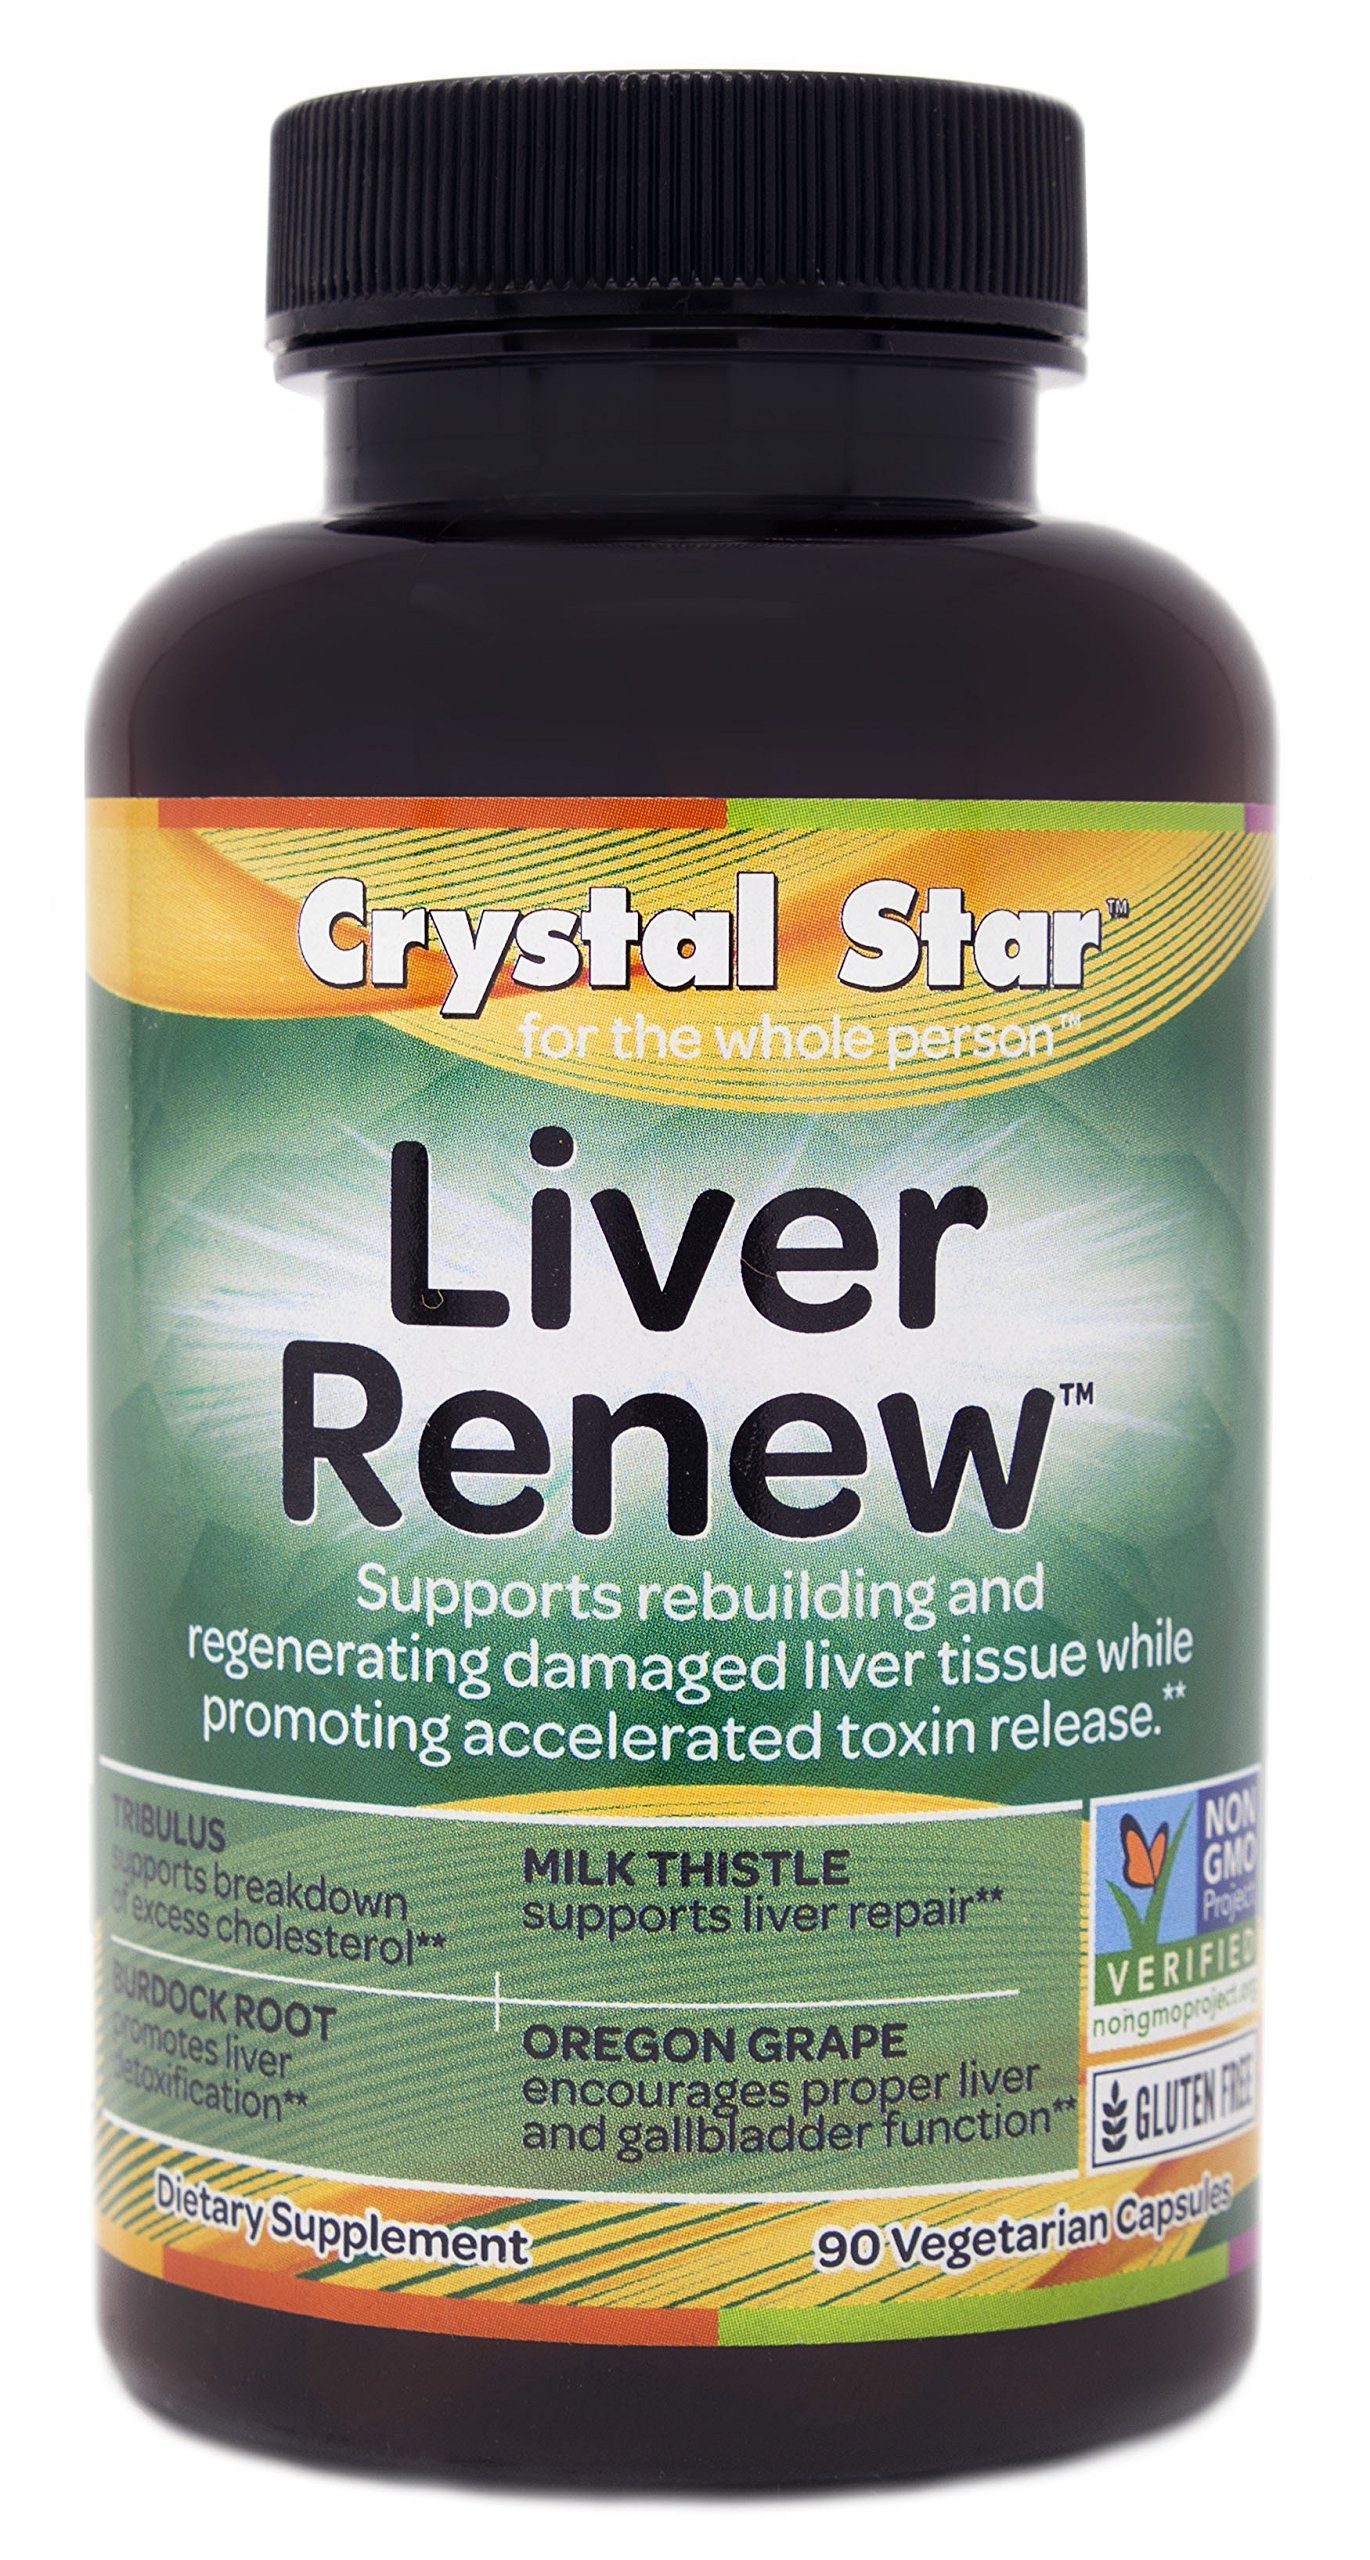 Crystal Star Liver Renew, 90 Vegetarian Capsules by Crystal Star